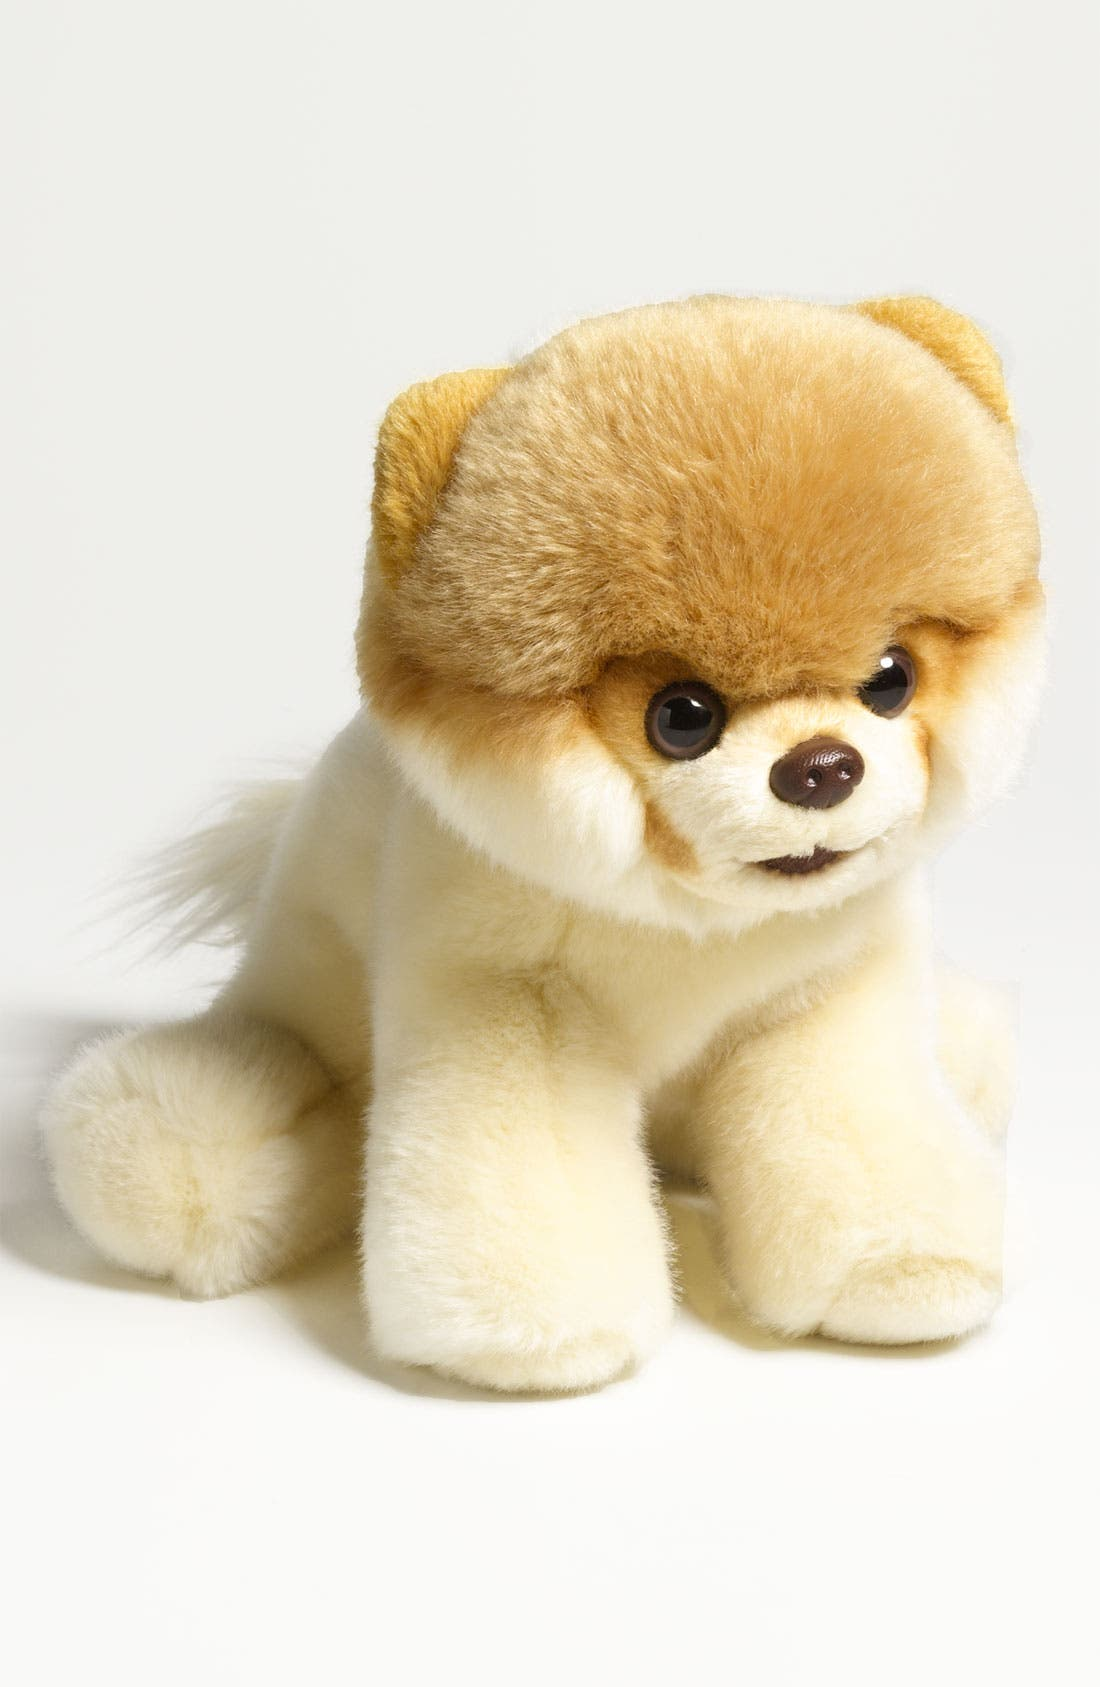 GUND 'Boo - World's Cutest Dog' Stuffed Animal, Main, color, 960